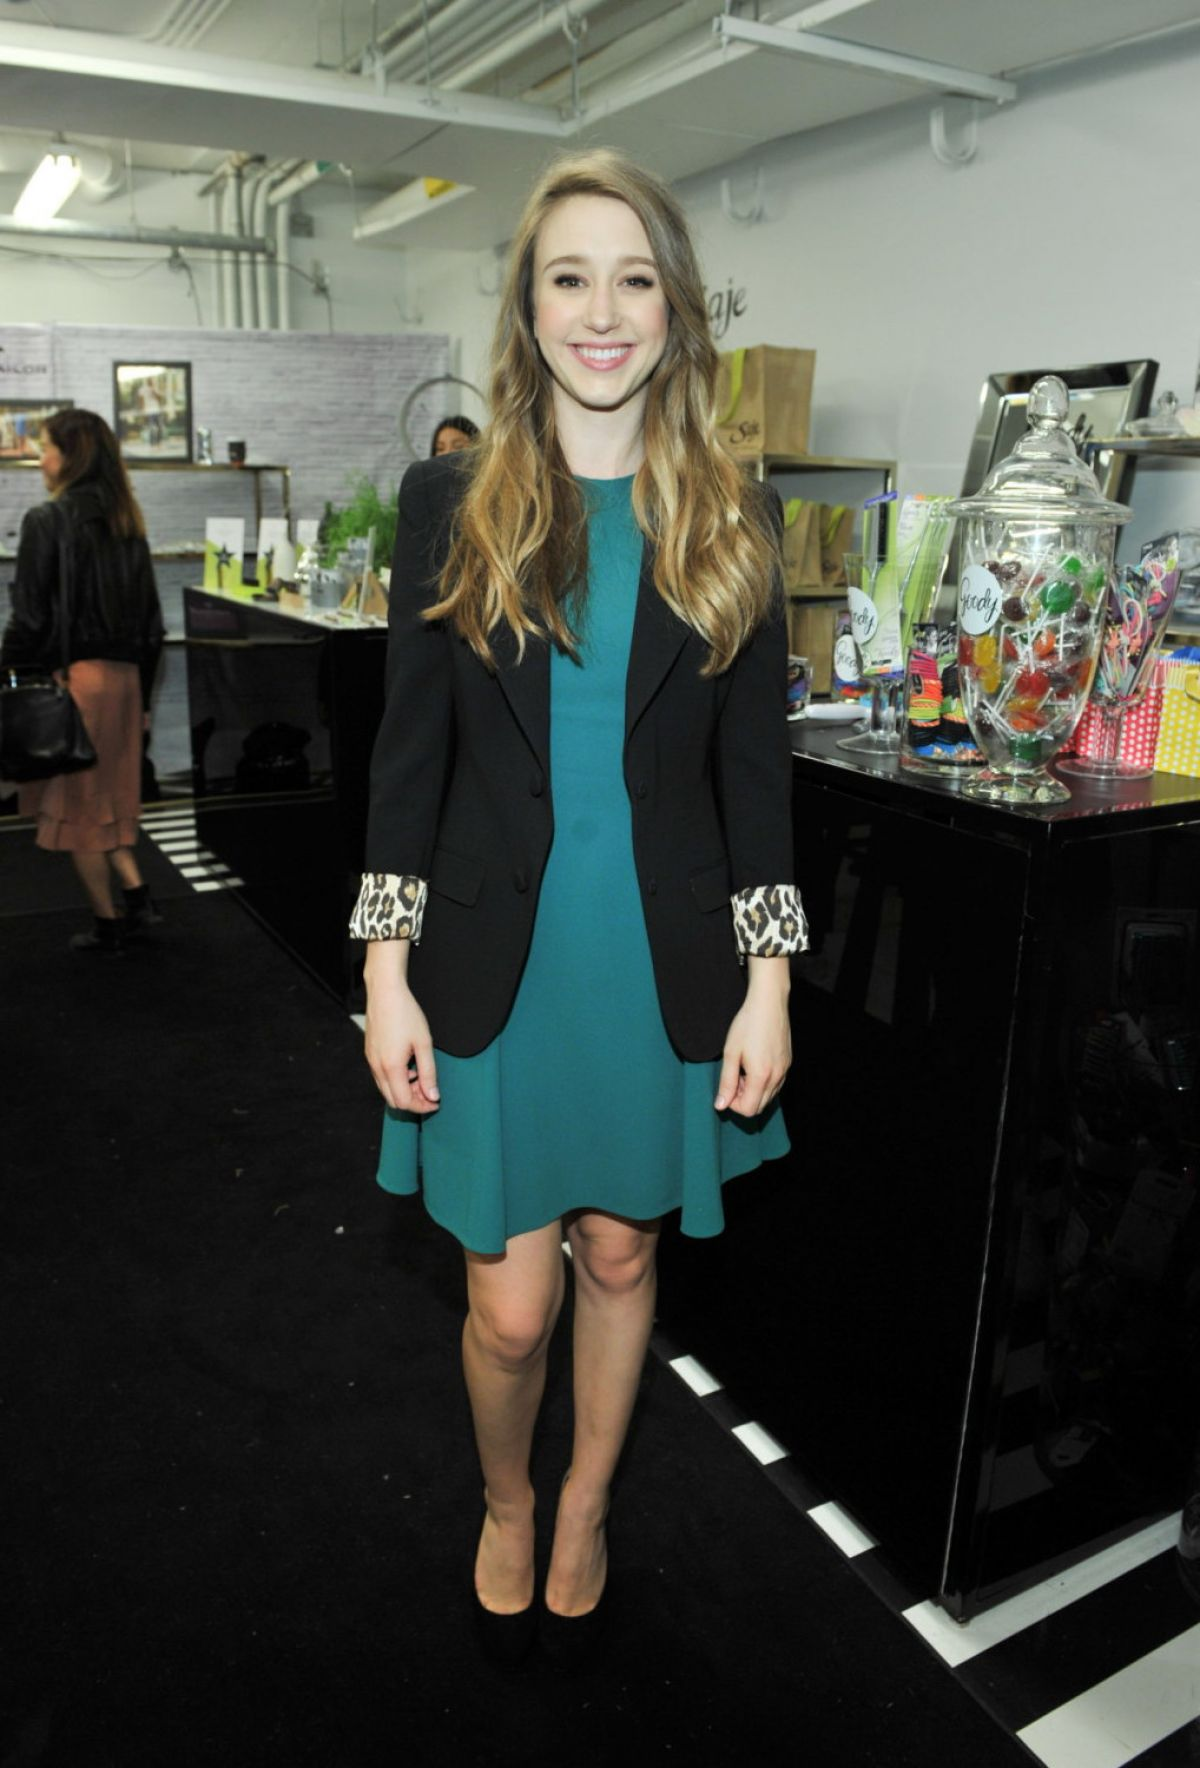 TAISSA FARMIGA at W Magazine nkpr it Lounge Studio at 2015 TIFF 09/19/2015